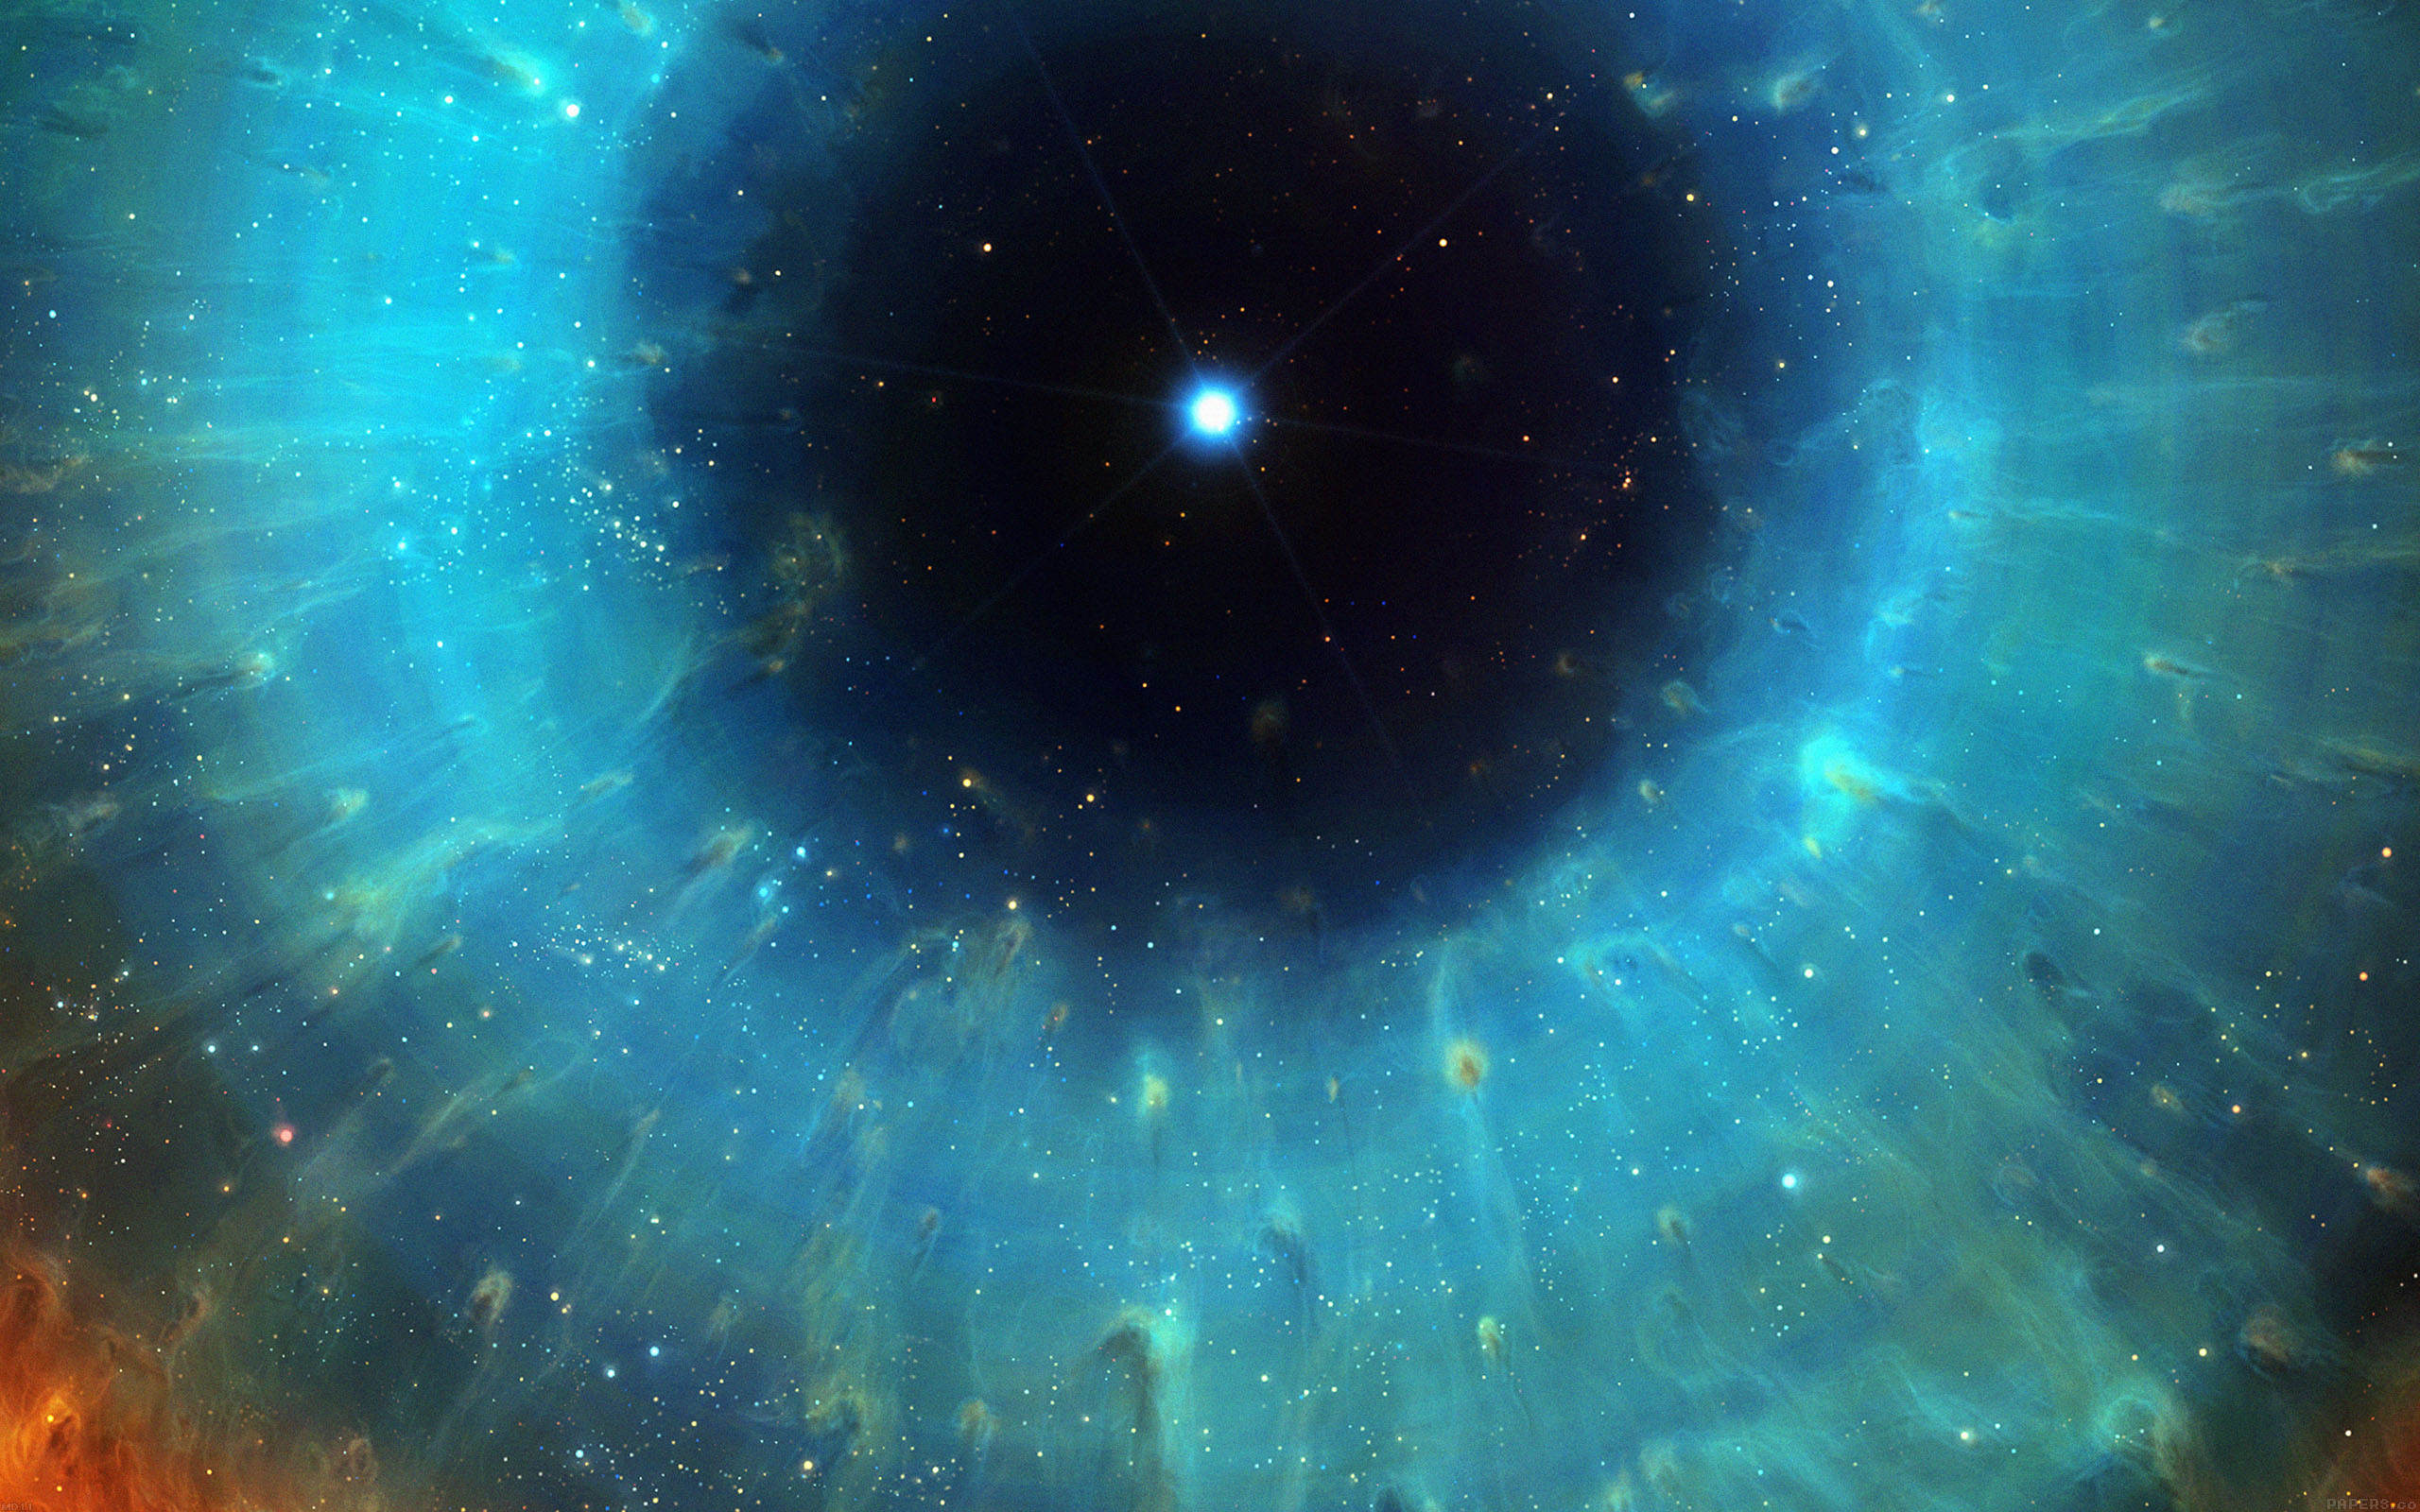 md11-wallpaper-galaxy-eye-center-space-stars - Papers.co